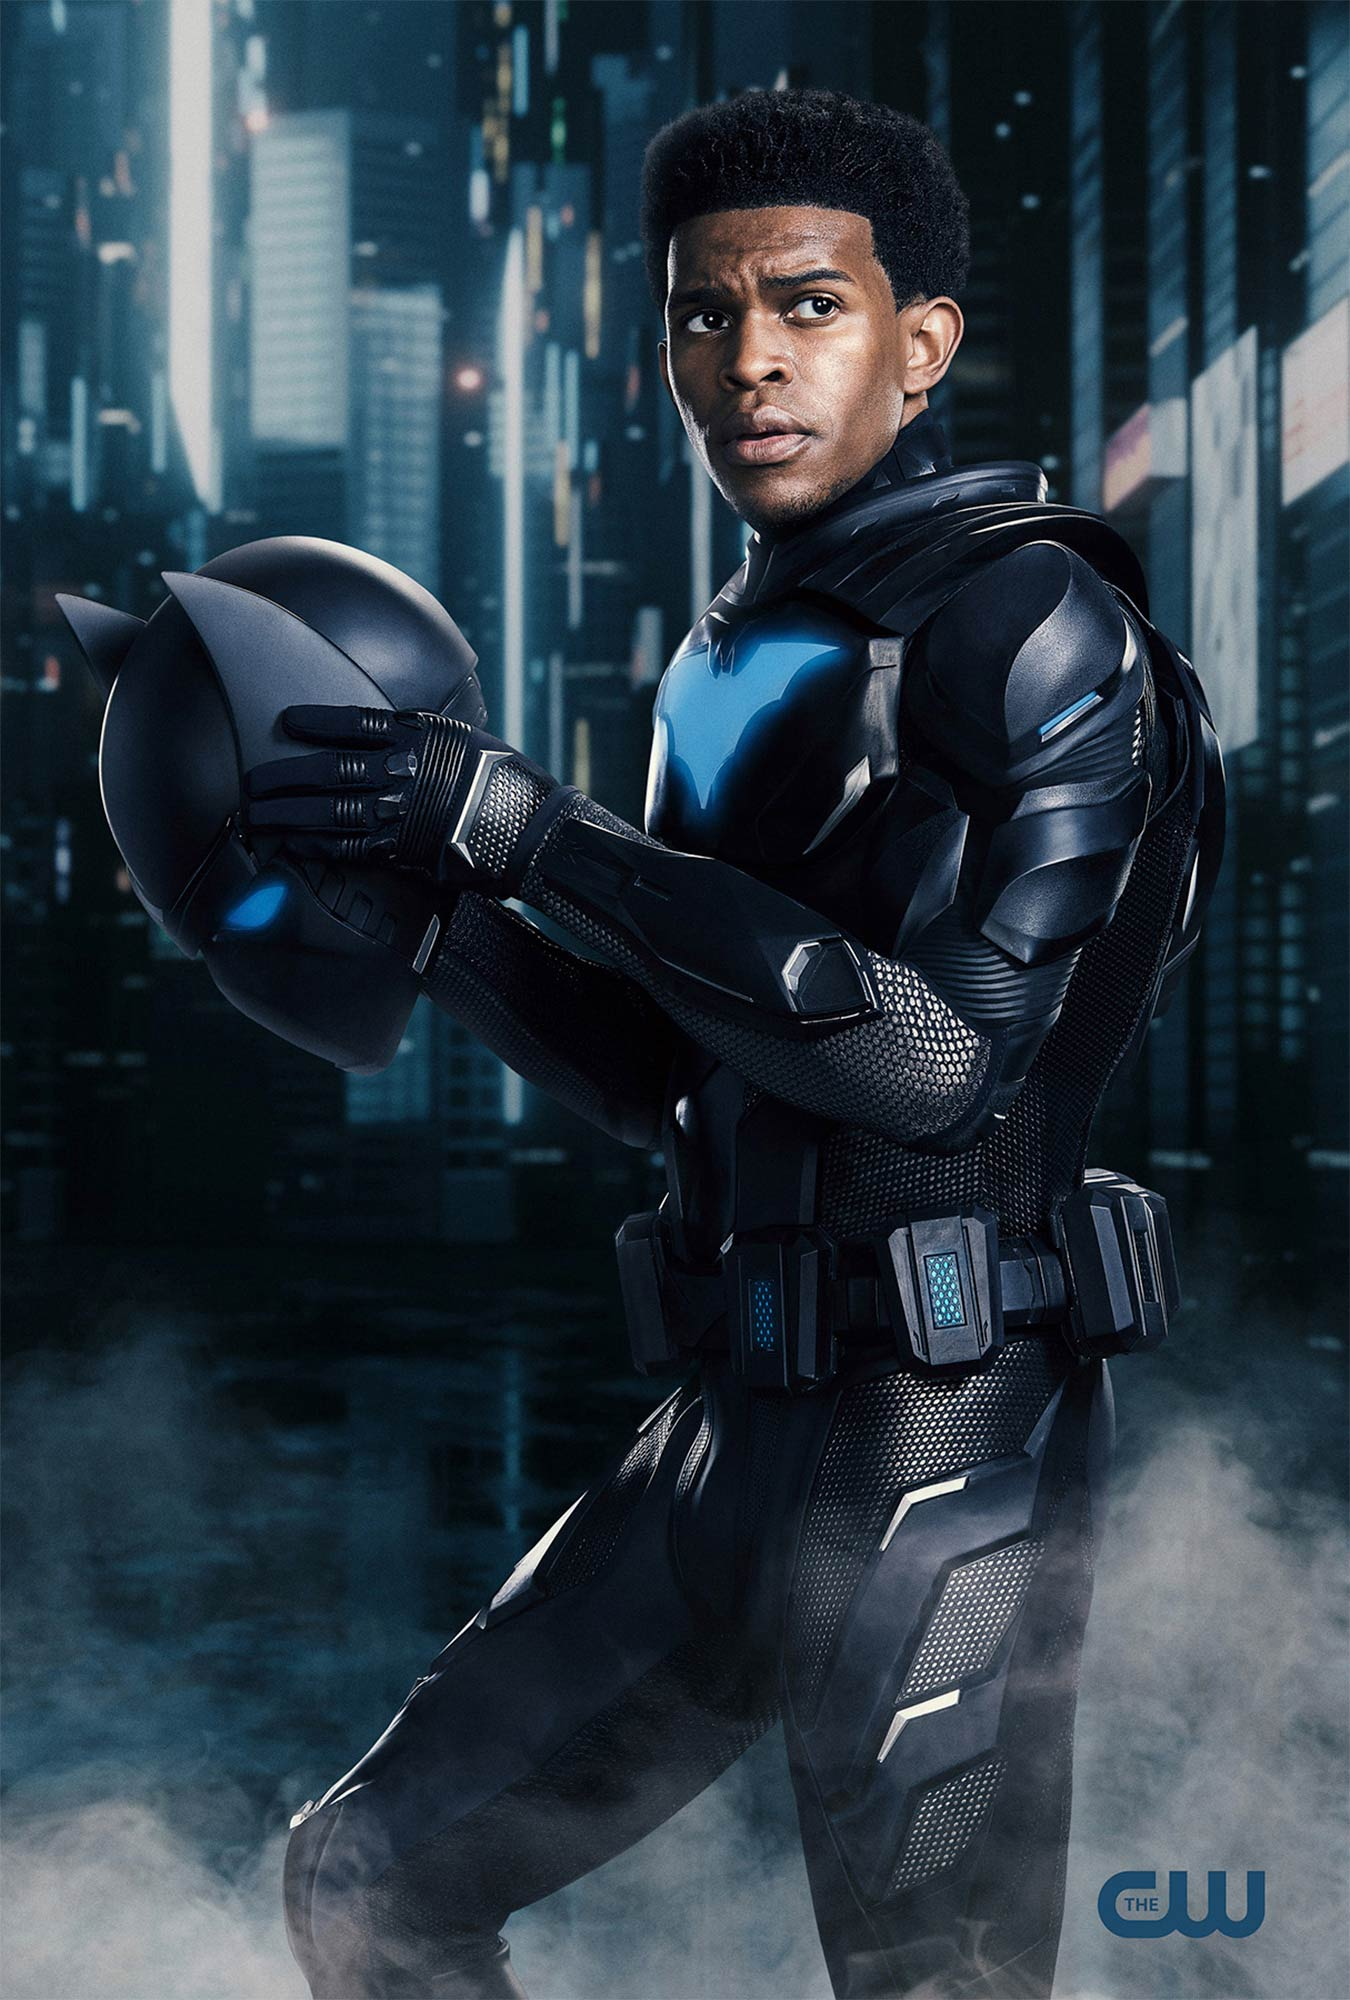 Batwoman star Camrus Johnson is suiting up as Batwing in season 2 finale 14